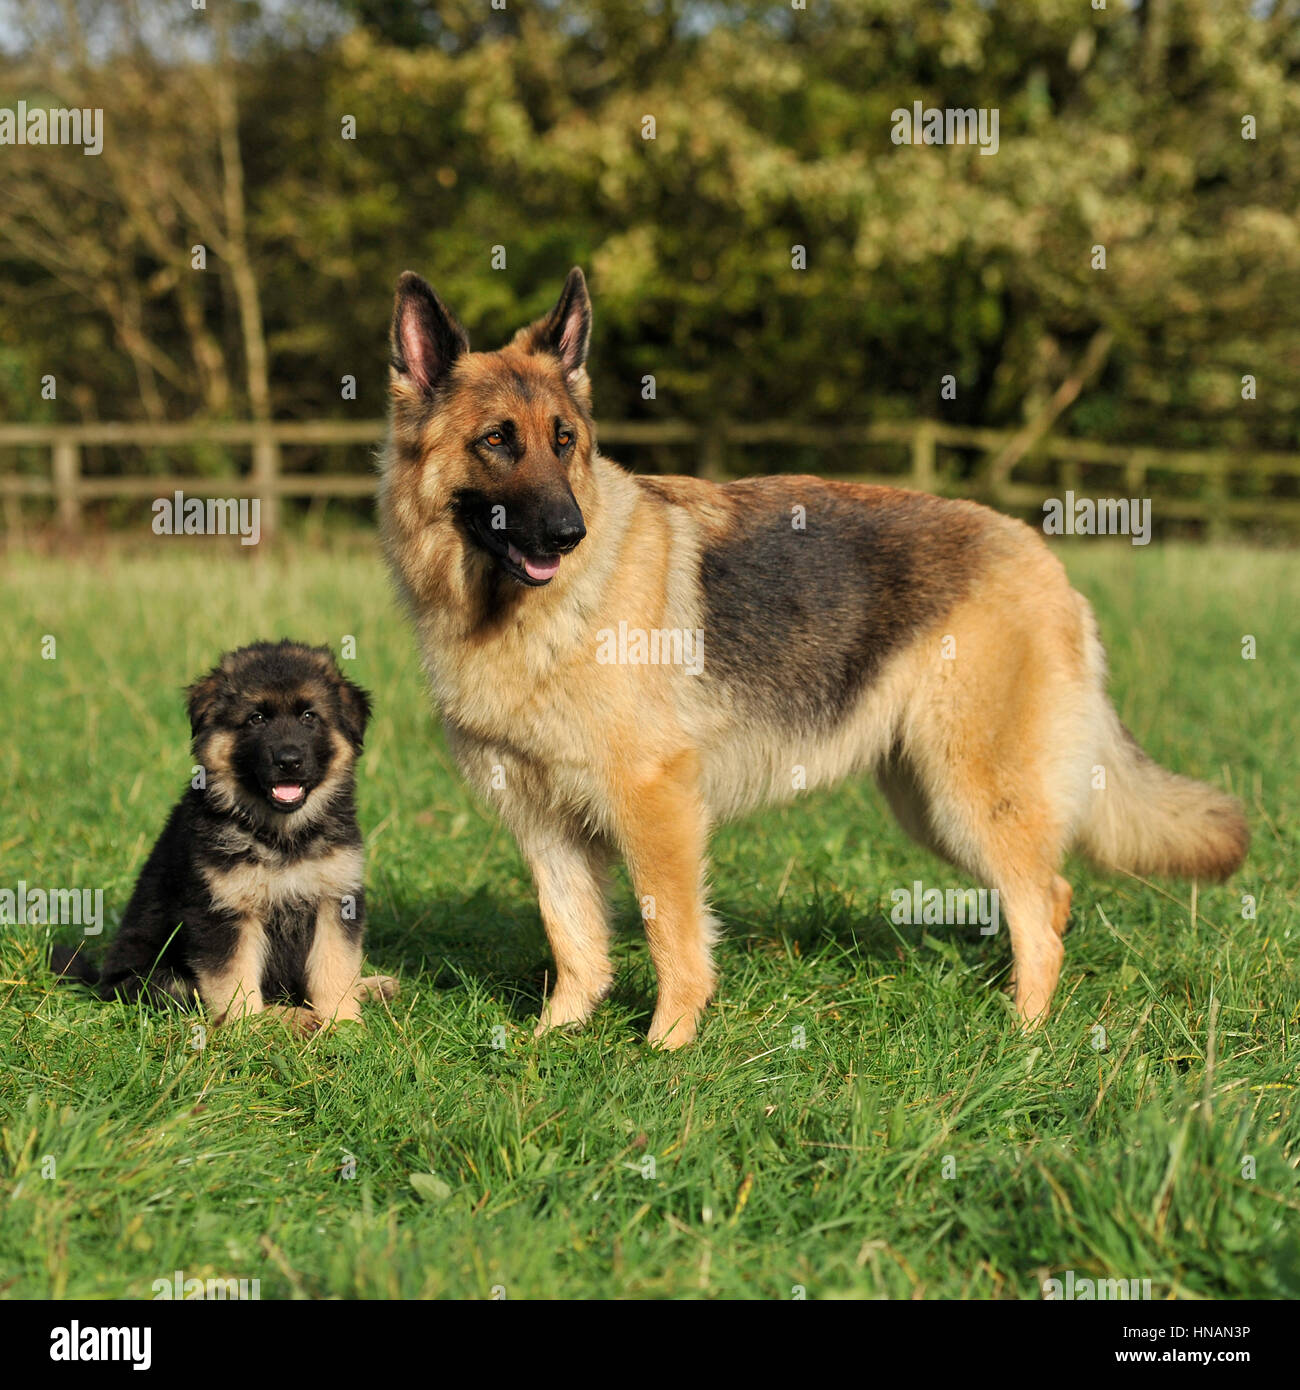 german shepherd dog and her puppy - Stock Image